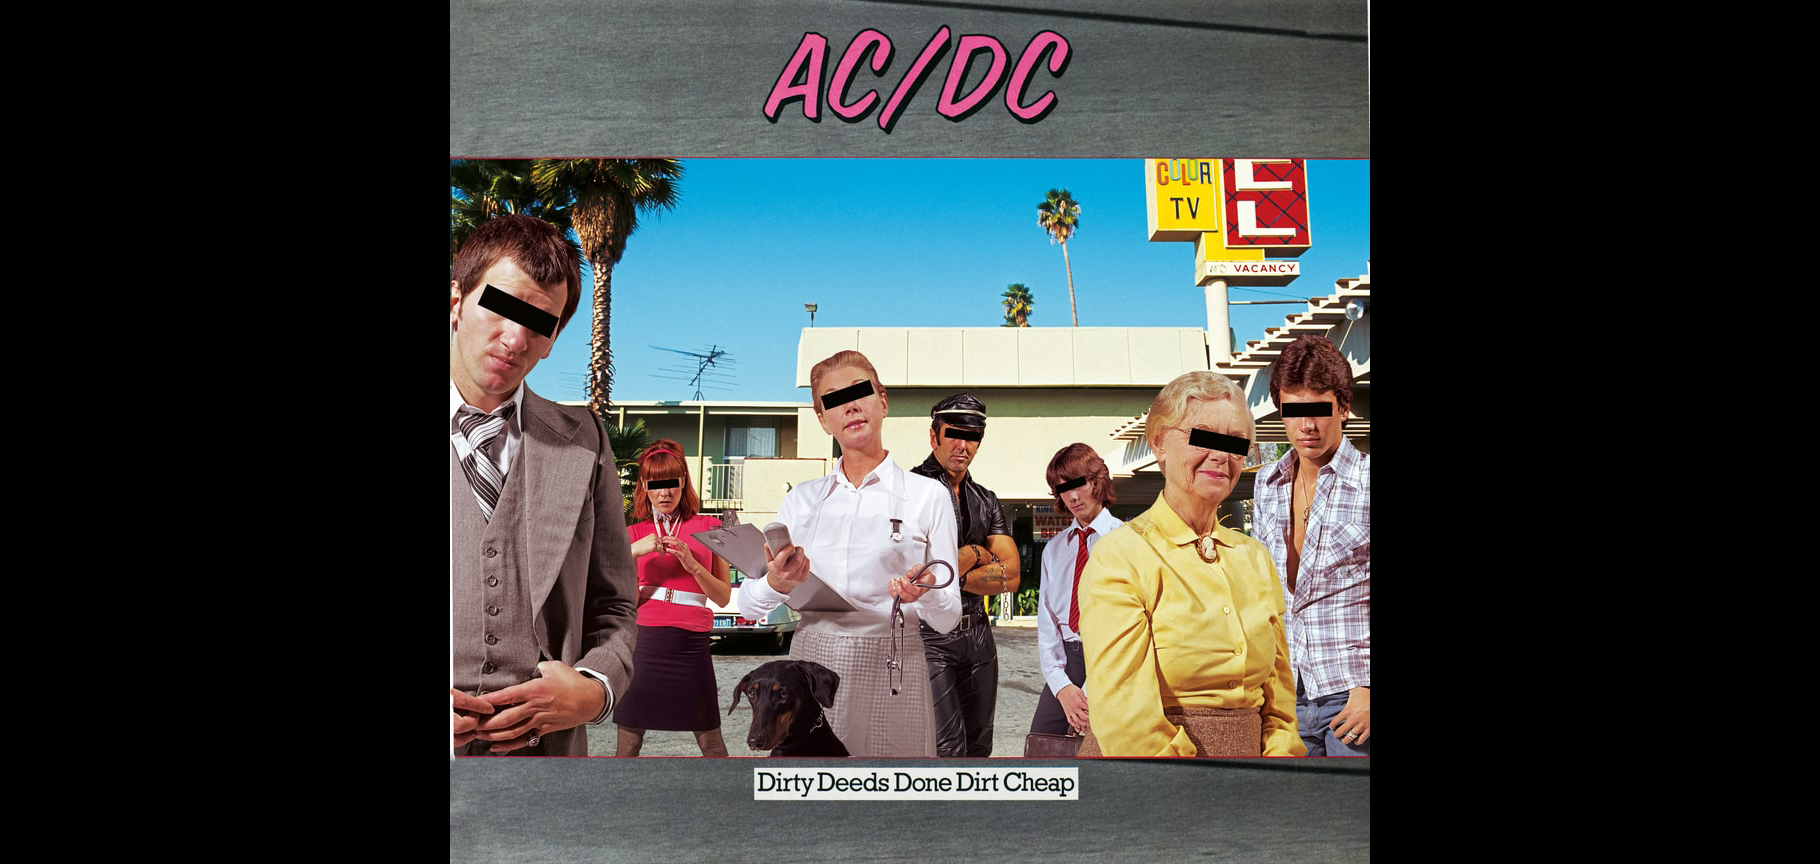 13 Things You Might Not Know About 'Dirty Deeds Done Dirt